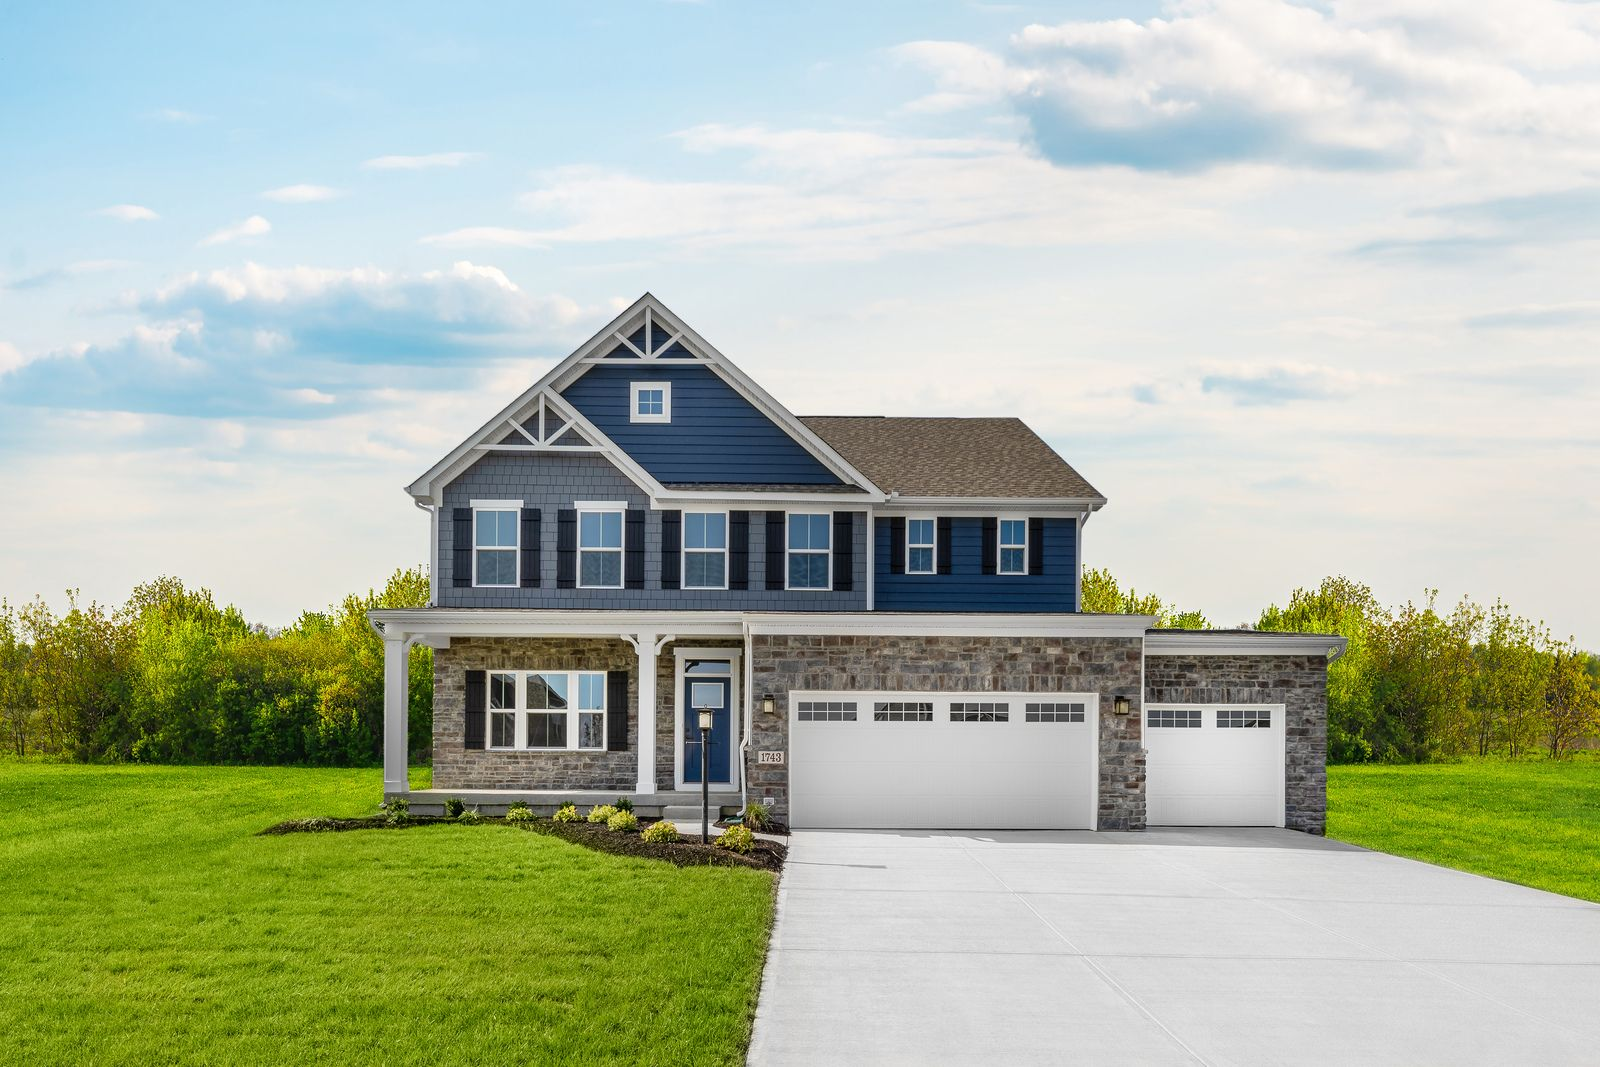 Welcome Home to Heritage Groves at Grande Reserve:The most amenity-rich new home community with included luxury features in Yorkville. Premier homesites w/ 3-car garages, basements, and no SSA Tax.Schedule your visit today!